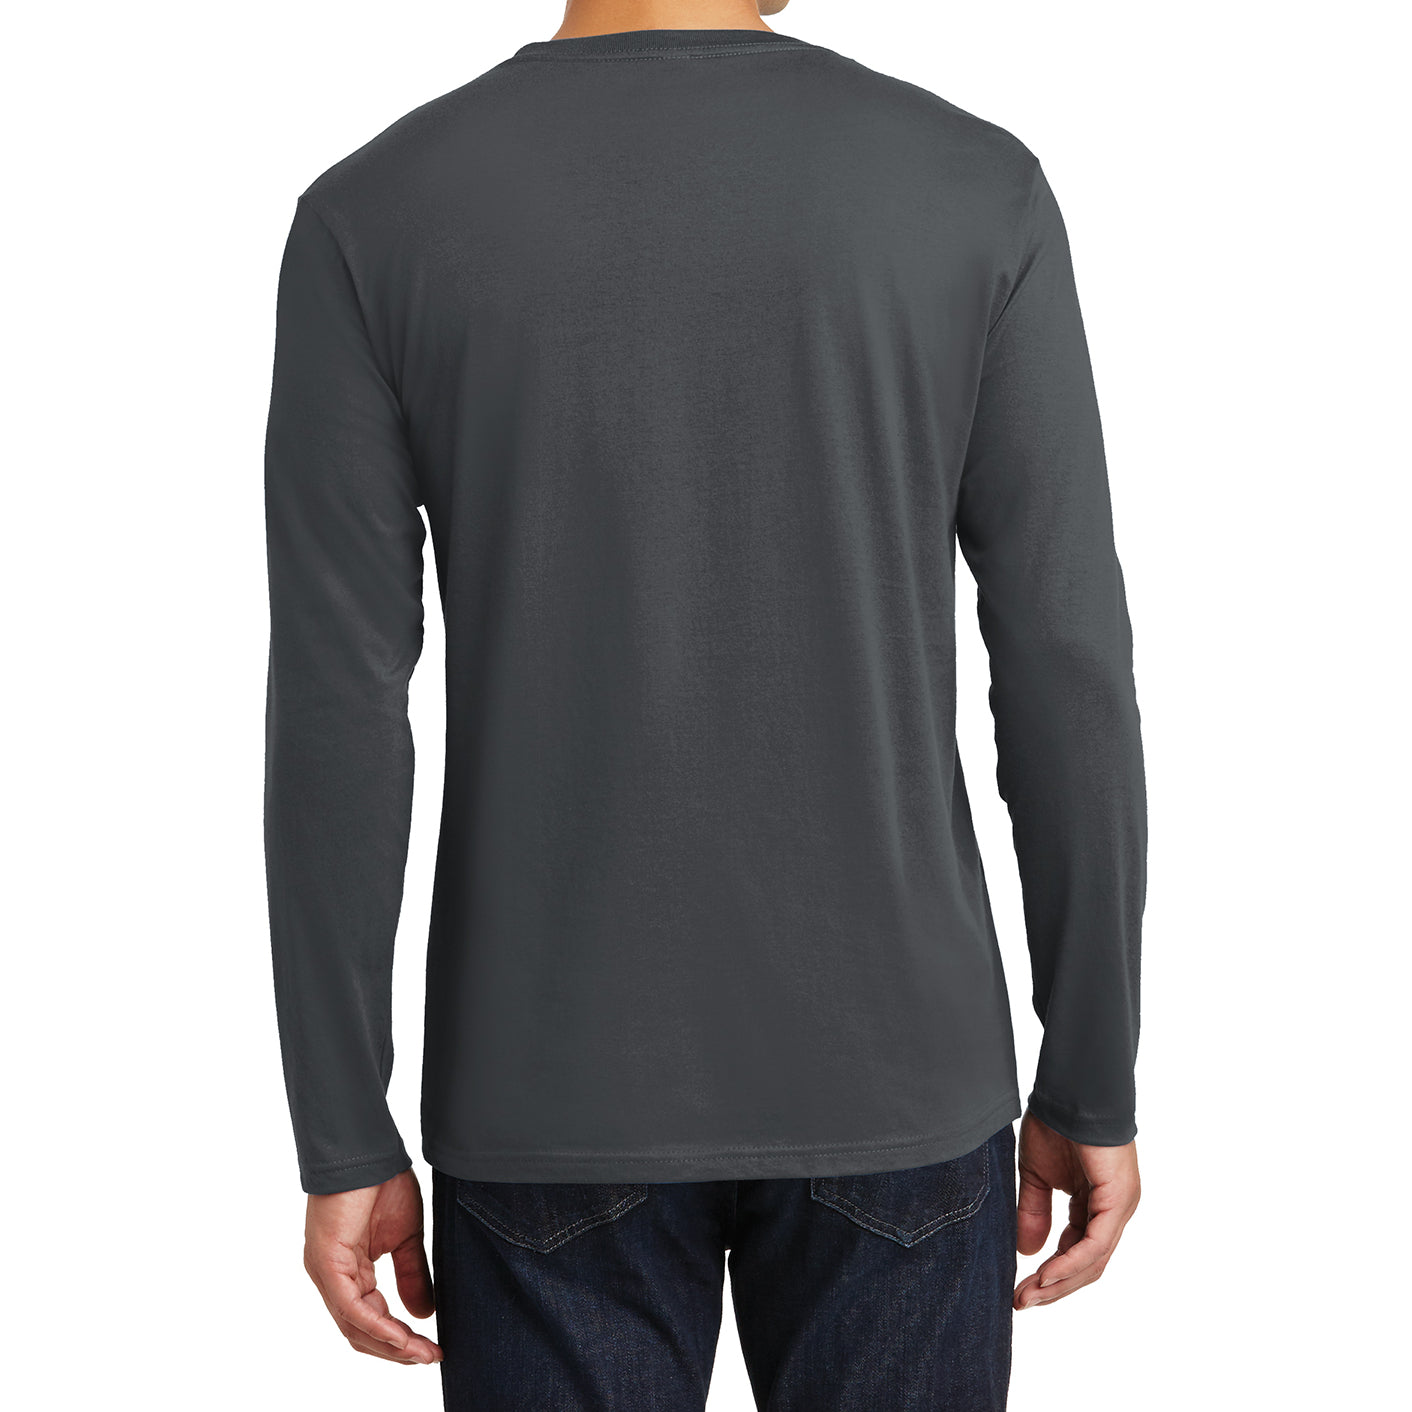 Mens Perfect Weight Long Sleeve Tee - Charcoal - Back